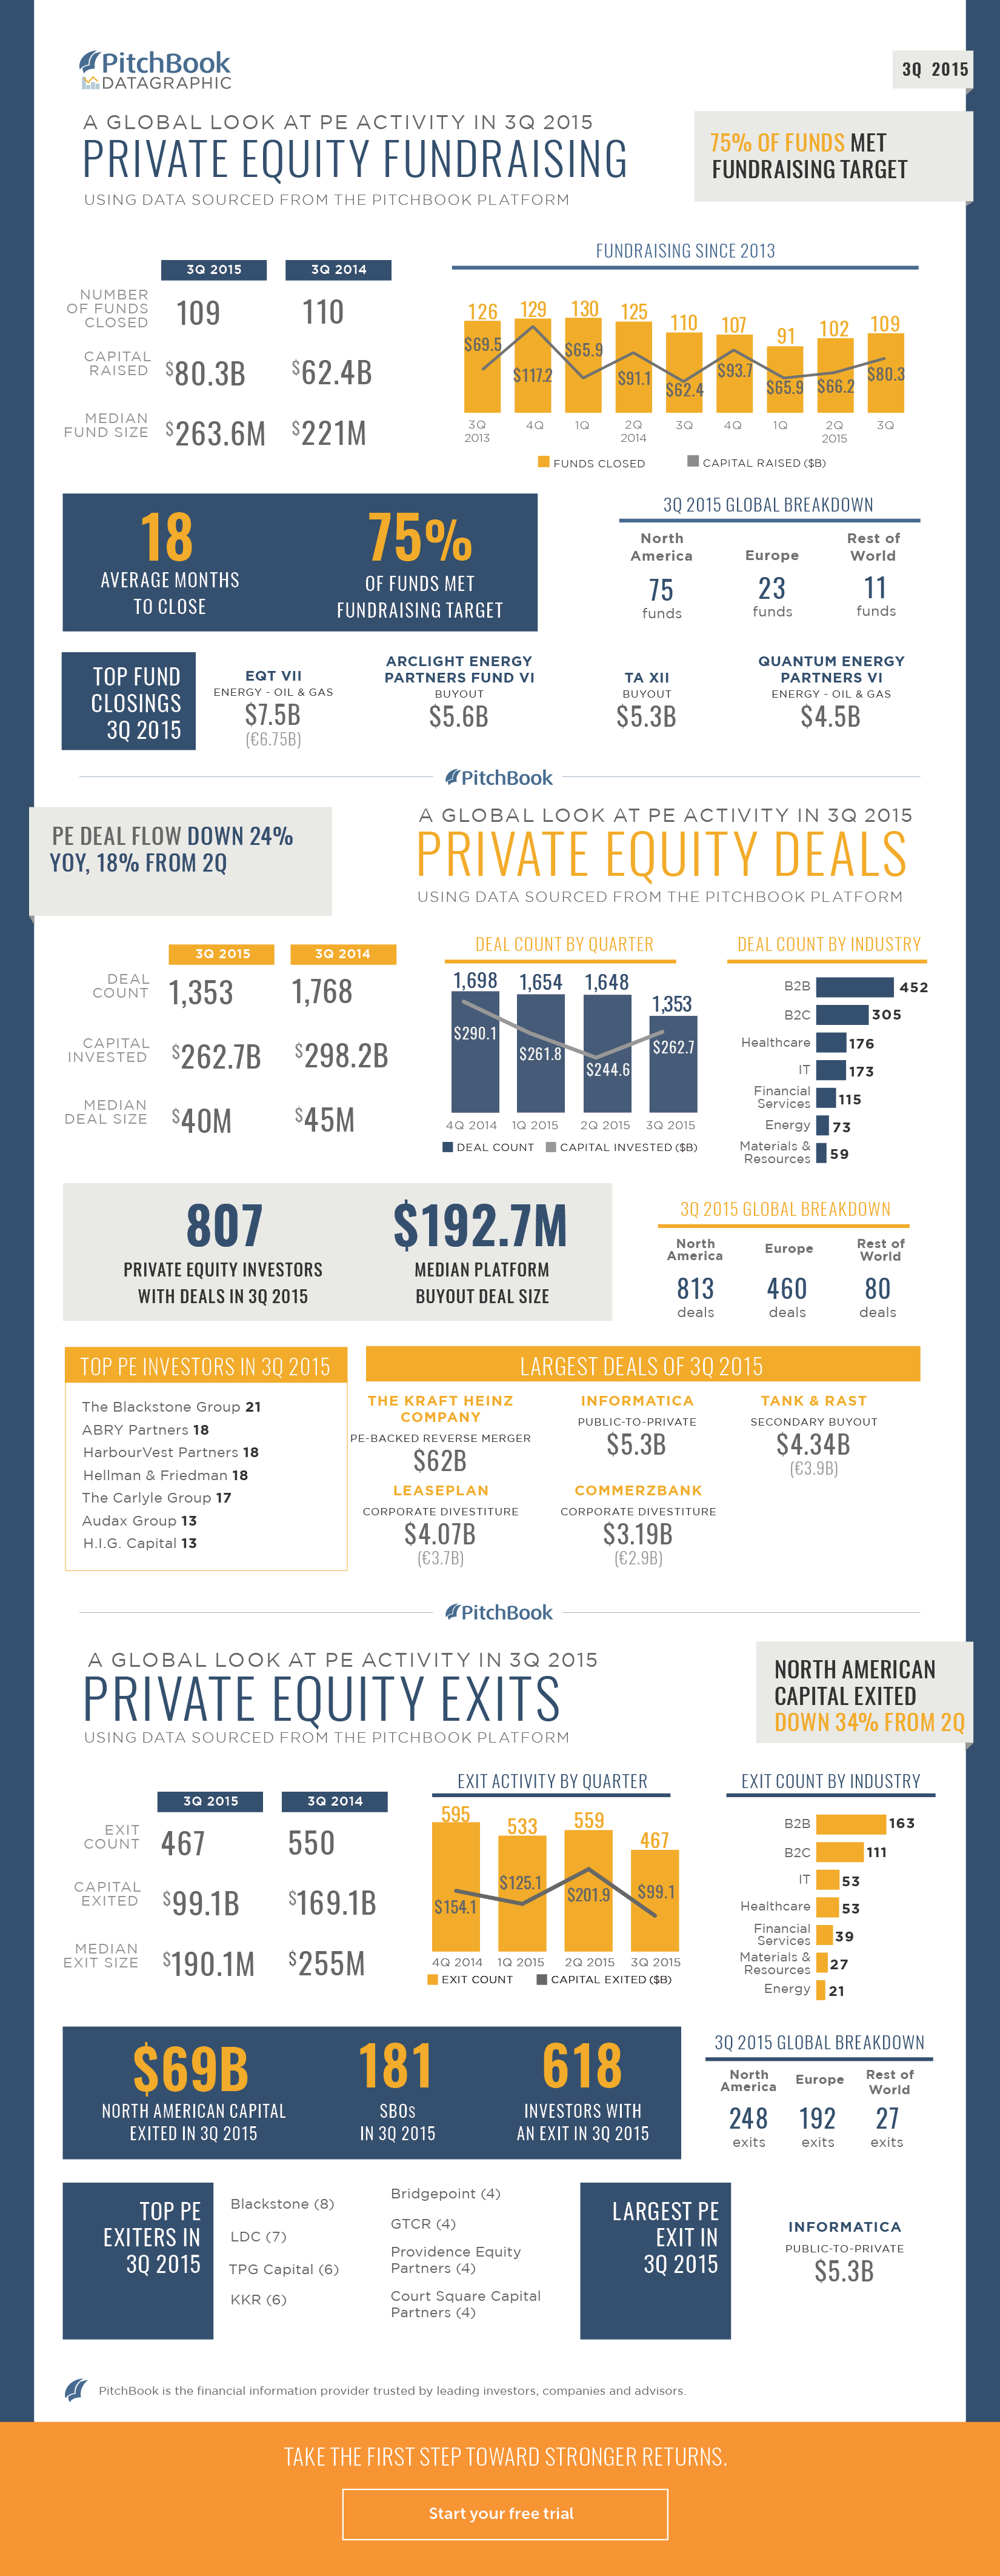 3Q 2015 Quarter-End Datagraphic PE